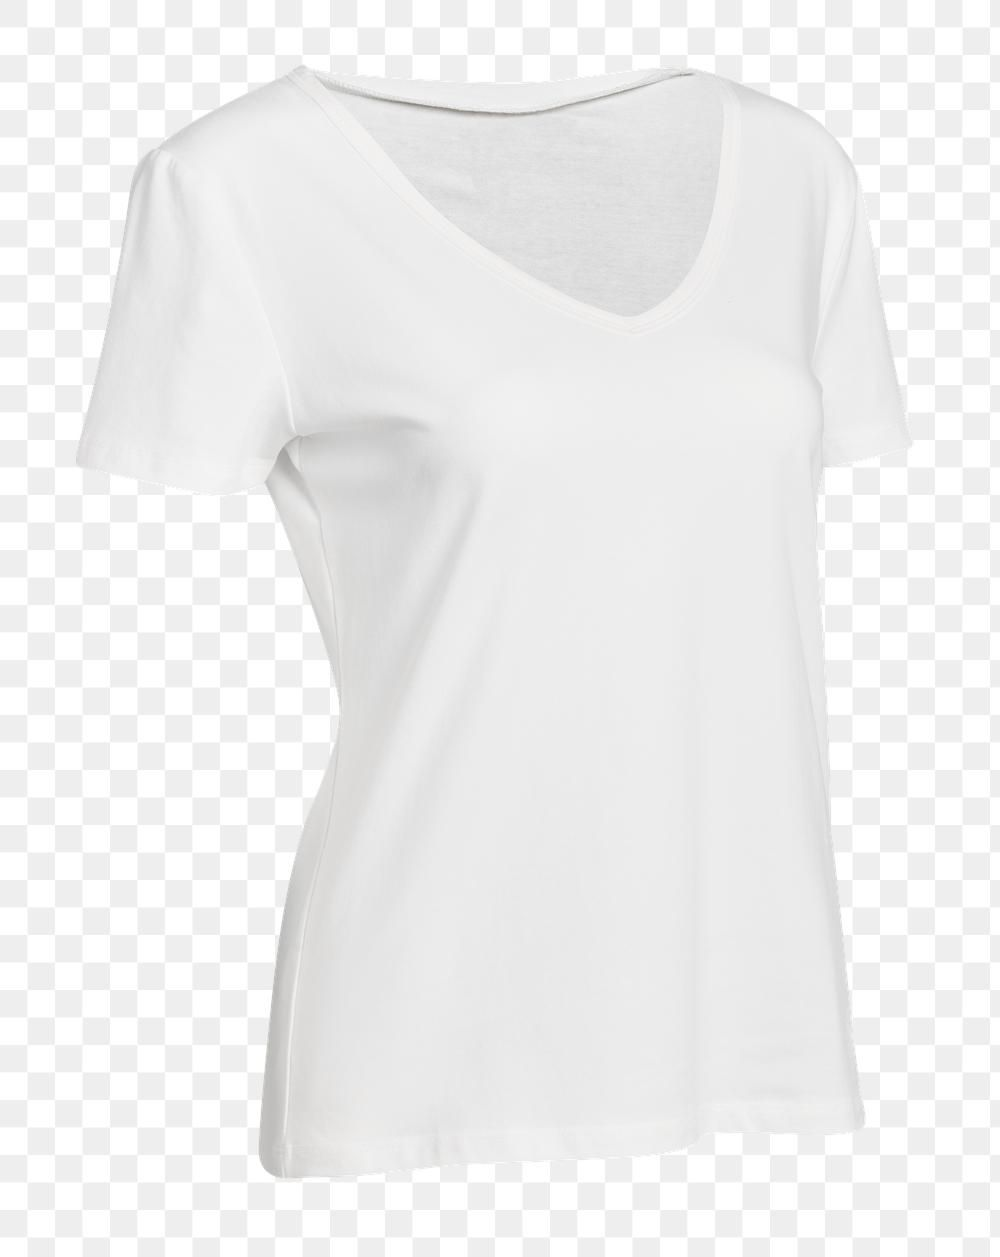 Download Women S White T Shirt Png Mockup Free Image By Rawpixel Com Oreo Dark Clothing Mockup T Shirt Png White Tshirt